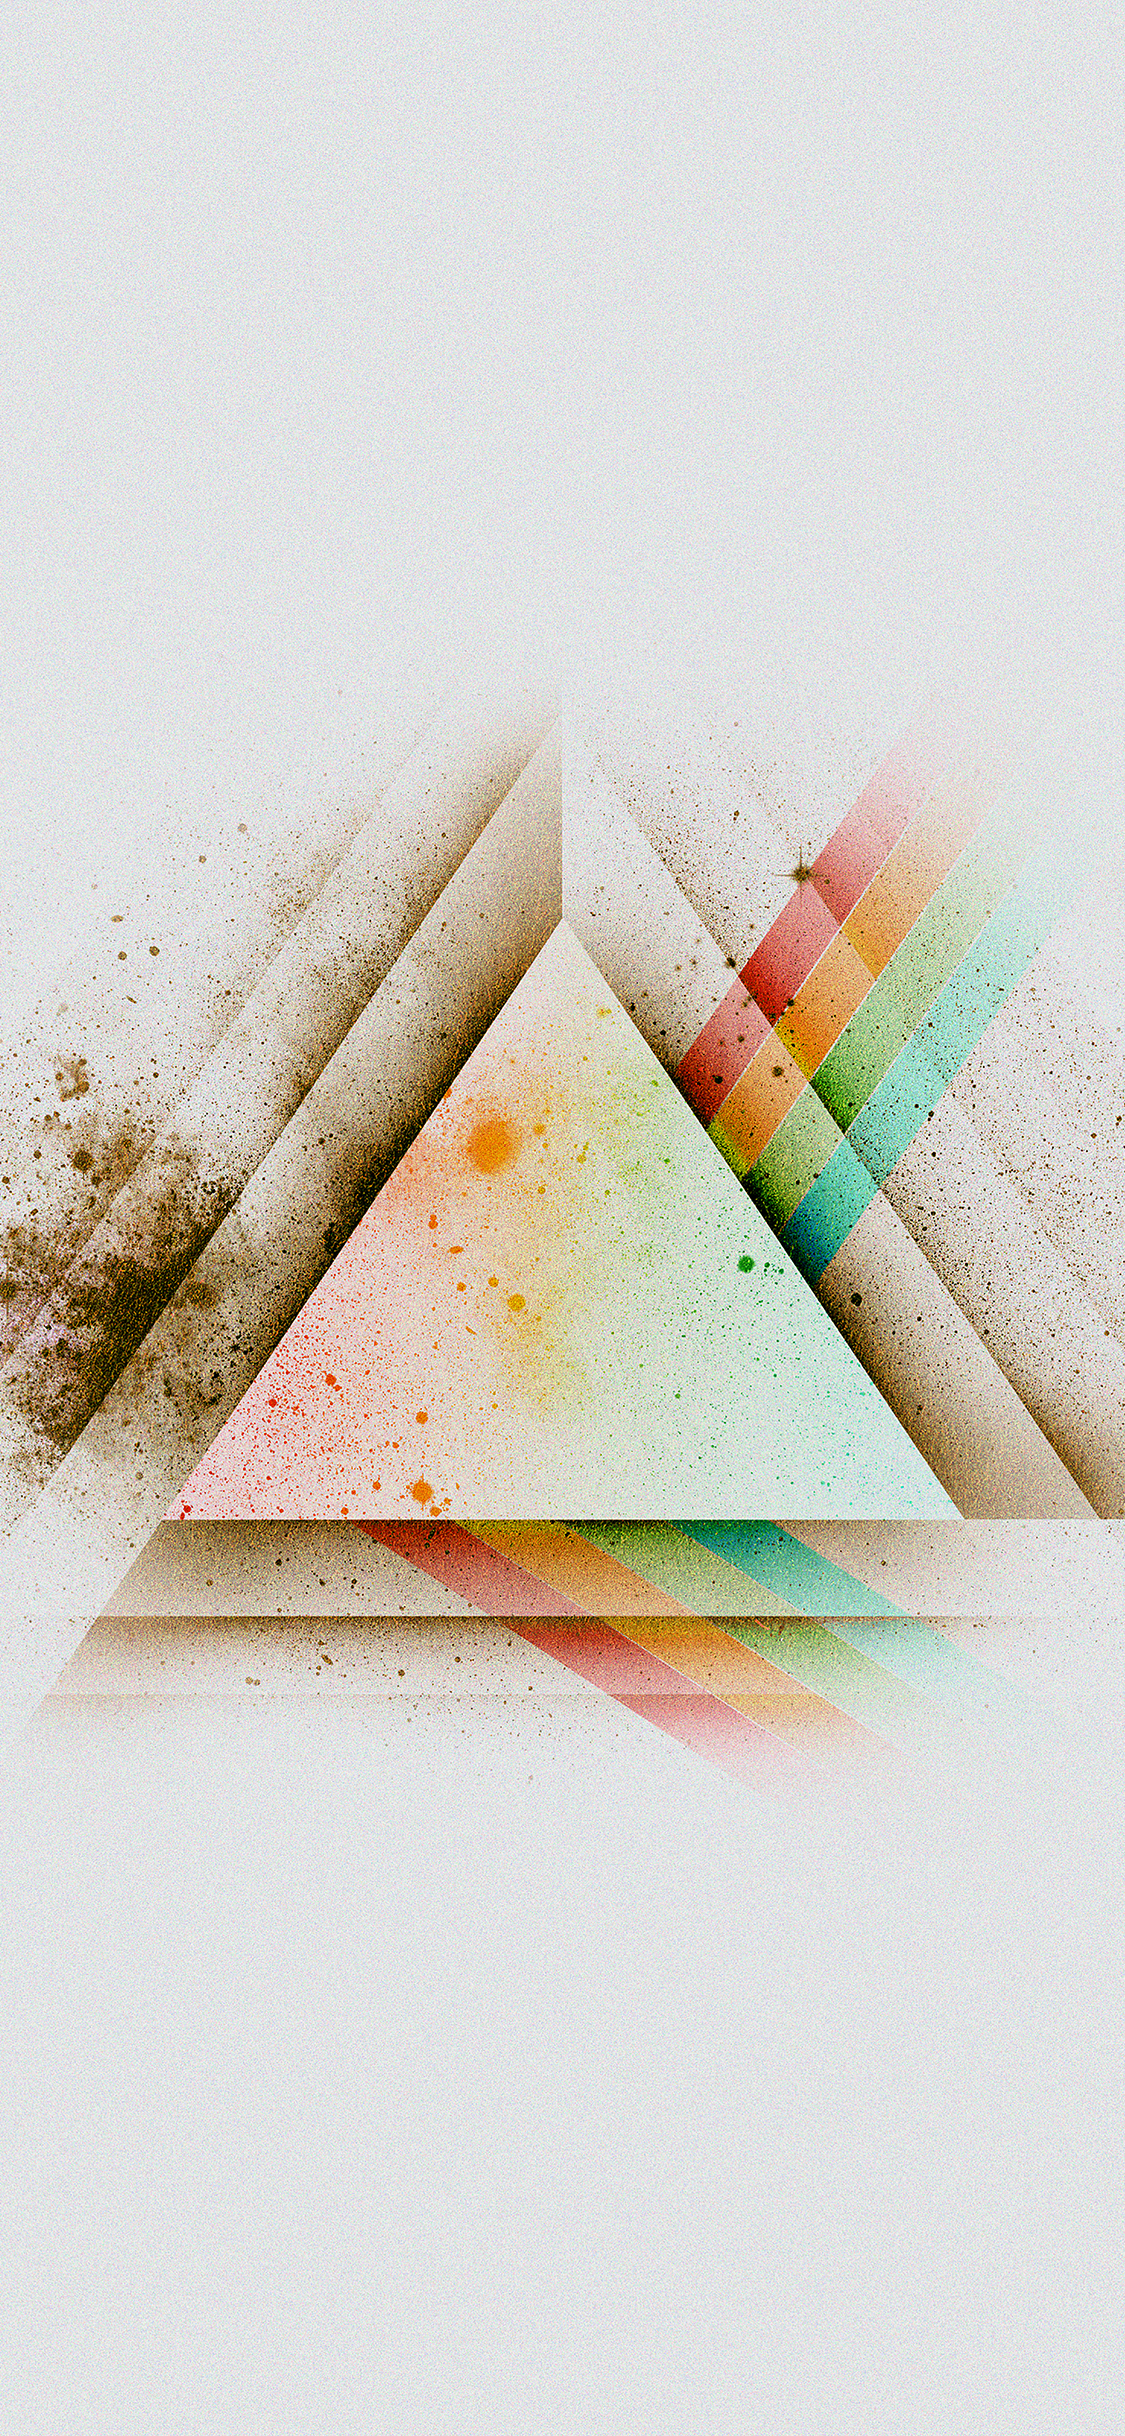 iPhoneXpapers.com-Apple-iPhone-wallpaper-ac09-wallpaper-triangle-art-white-rainbow-illust-graphic